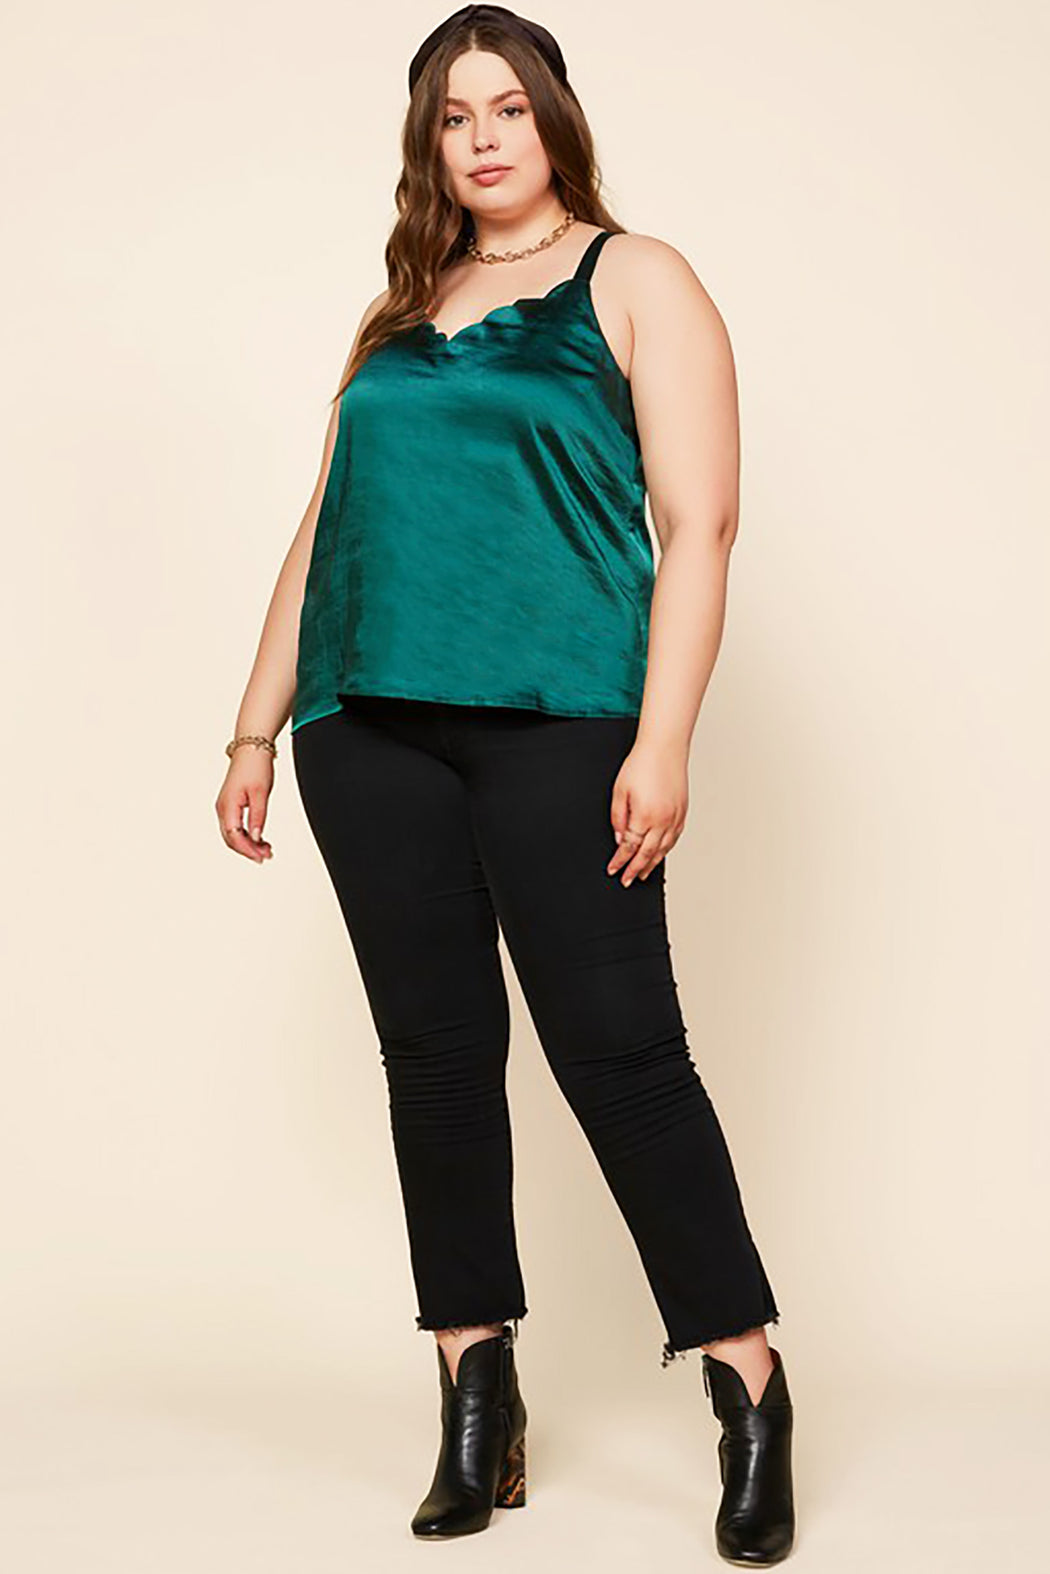 Belle and Broome Joy satin scalloped cami in emerald green on model with black jeans and black boots, full outfit view